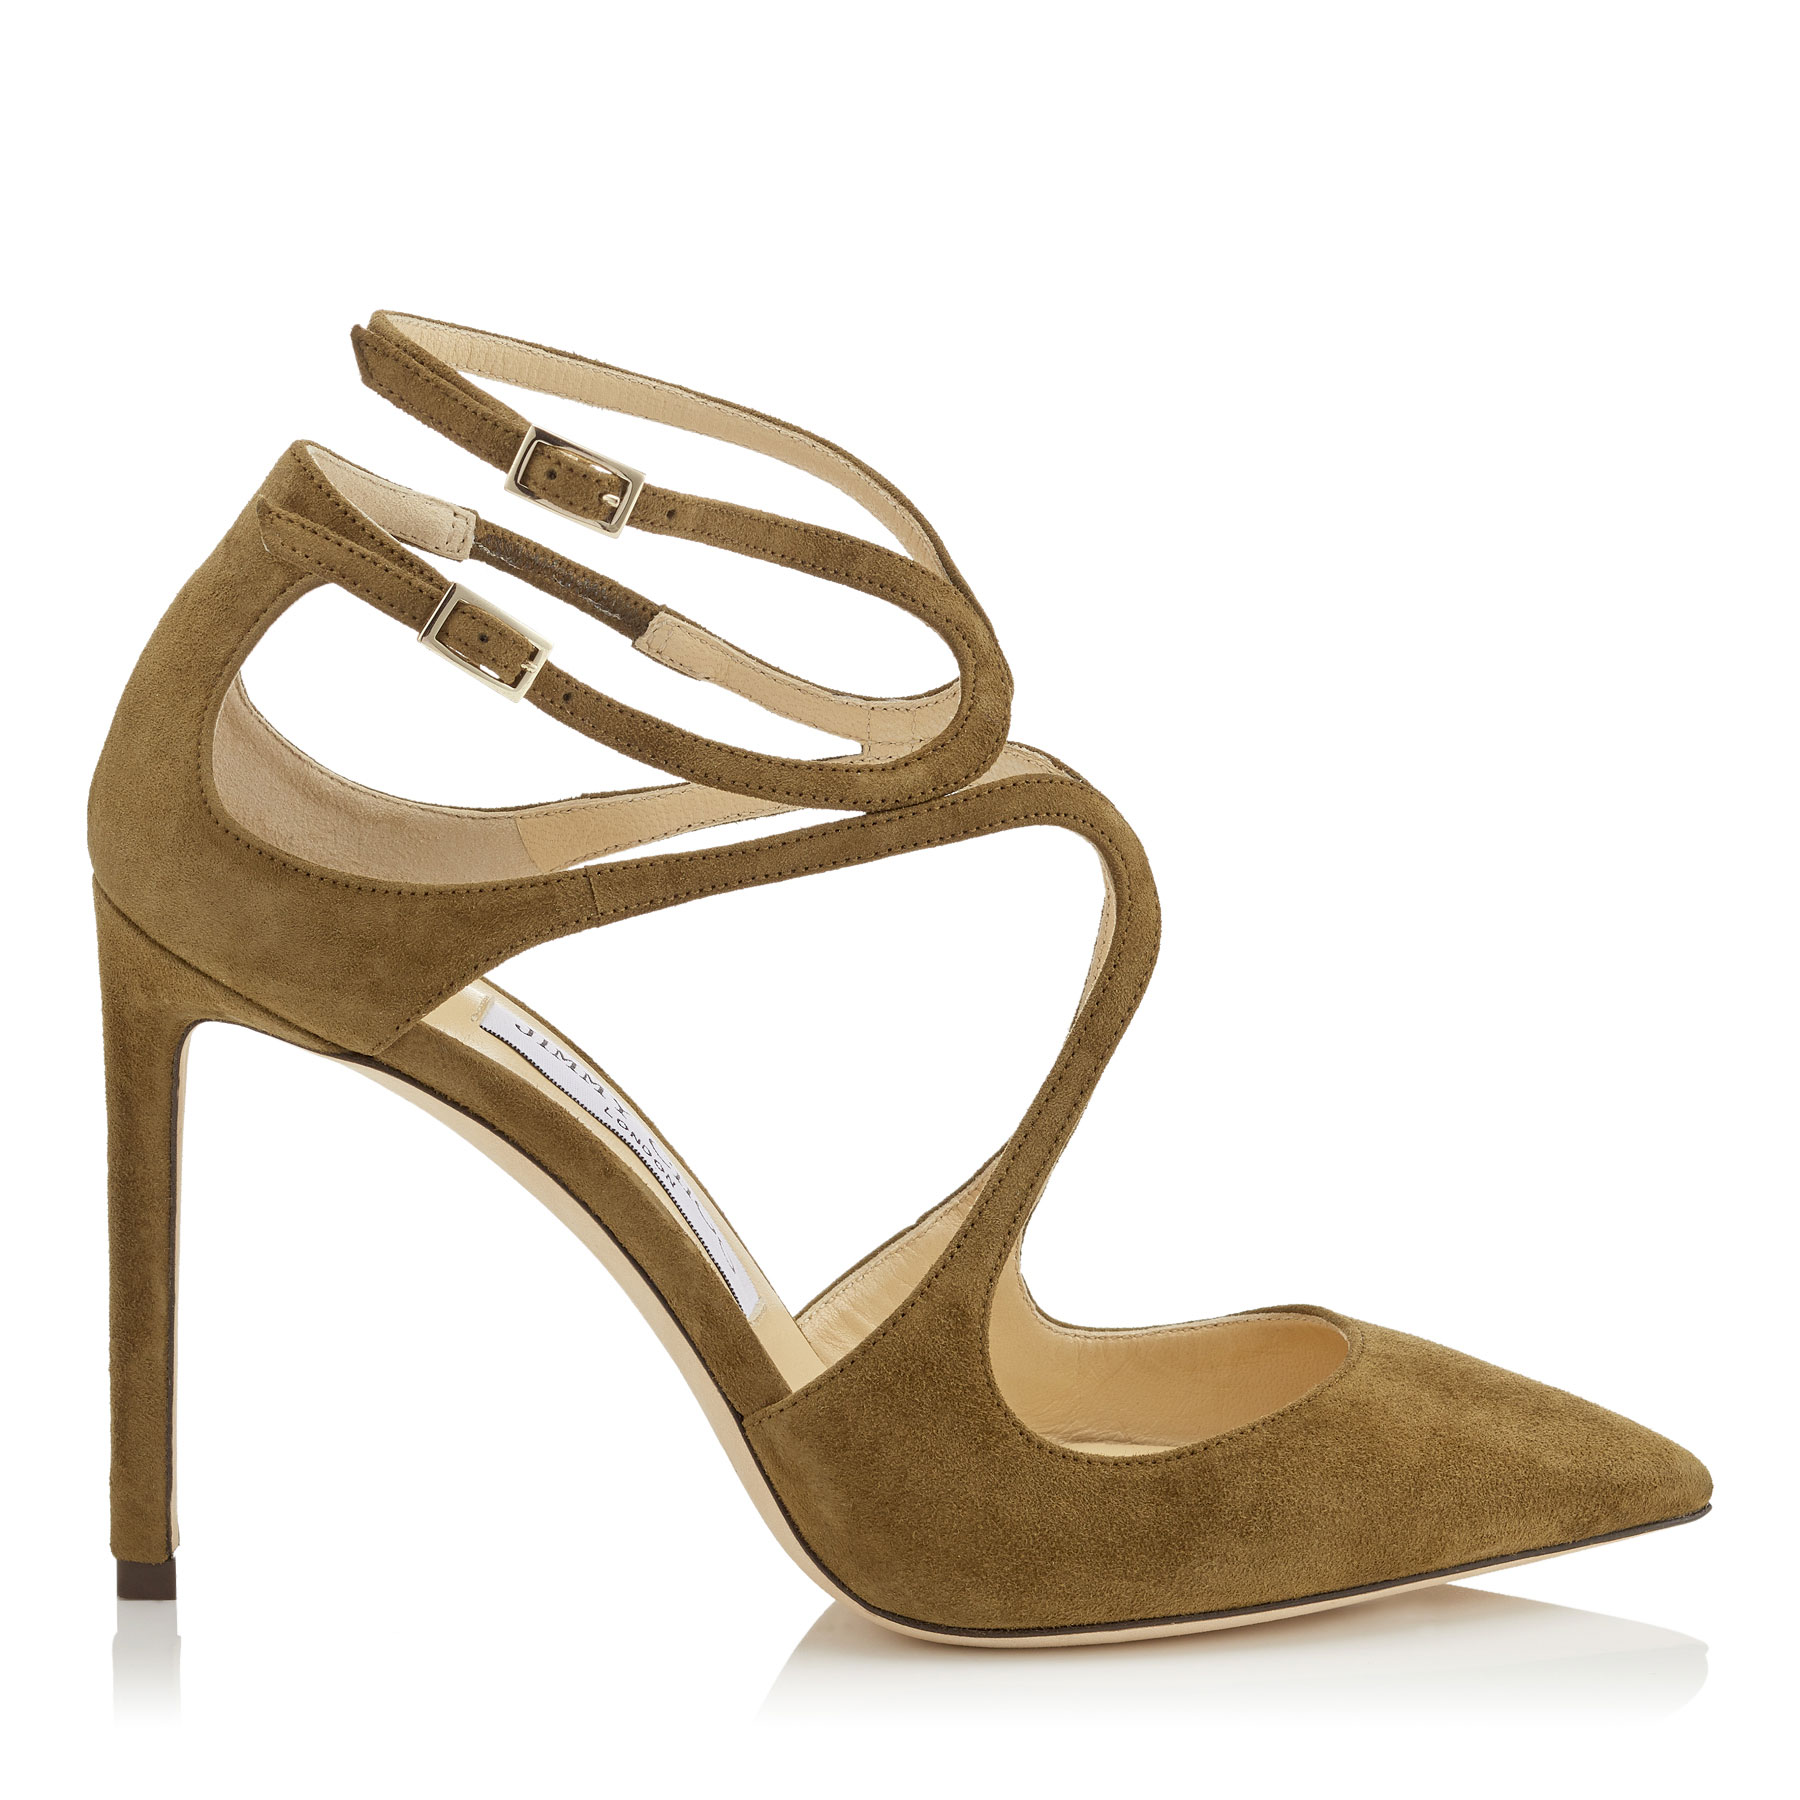 LANCER 100 Olive Suede Pointy Toe Pumps by Jimmy Choo